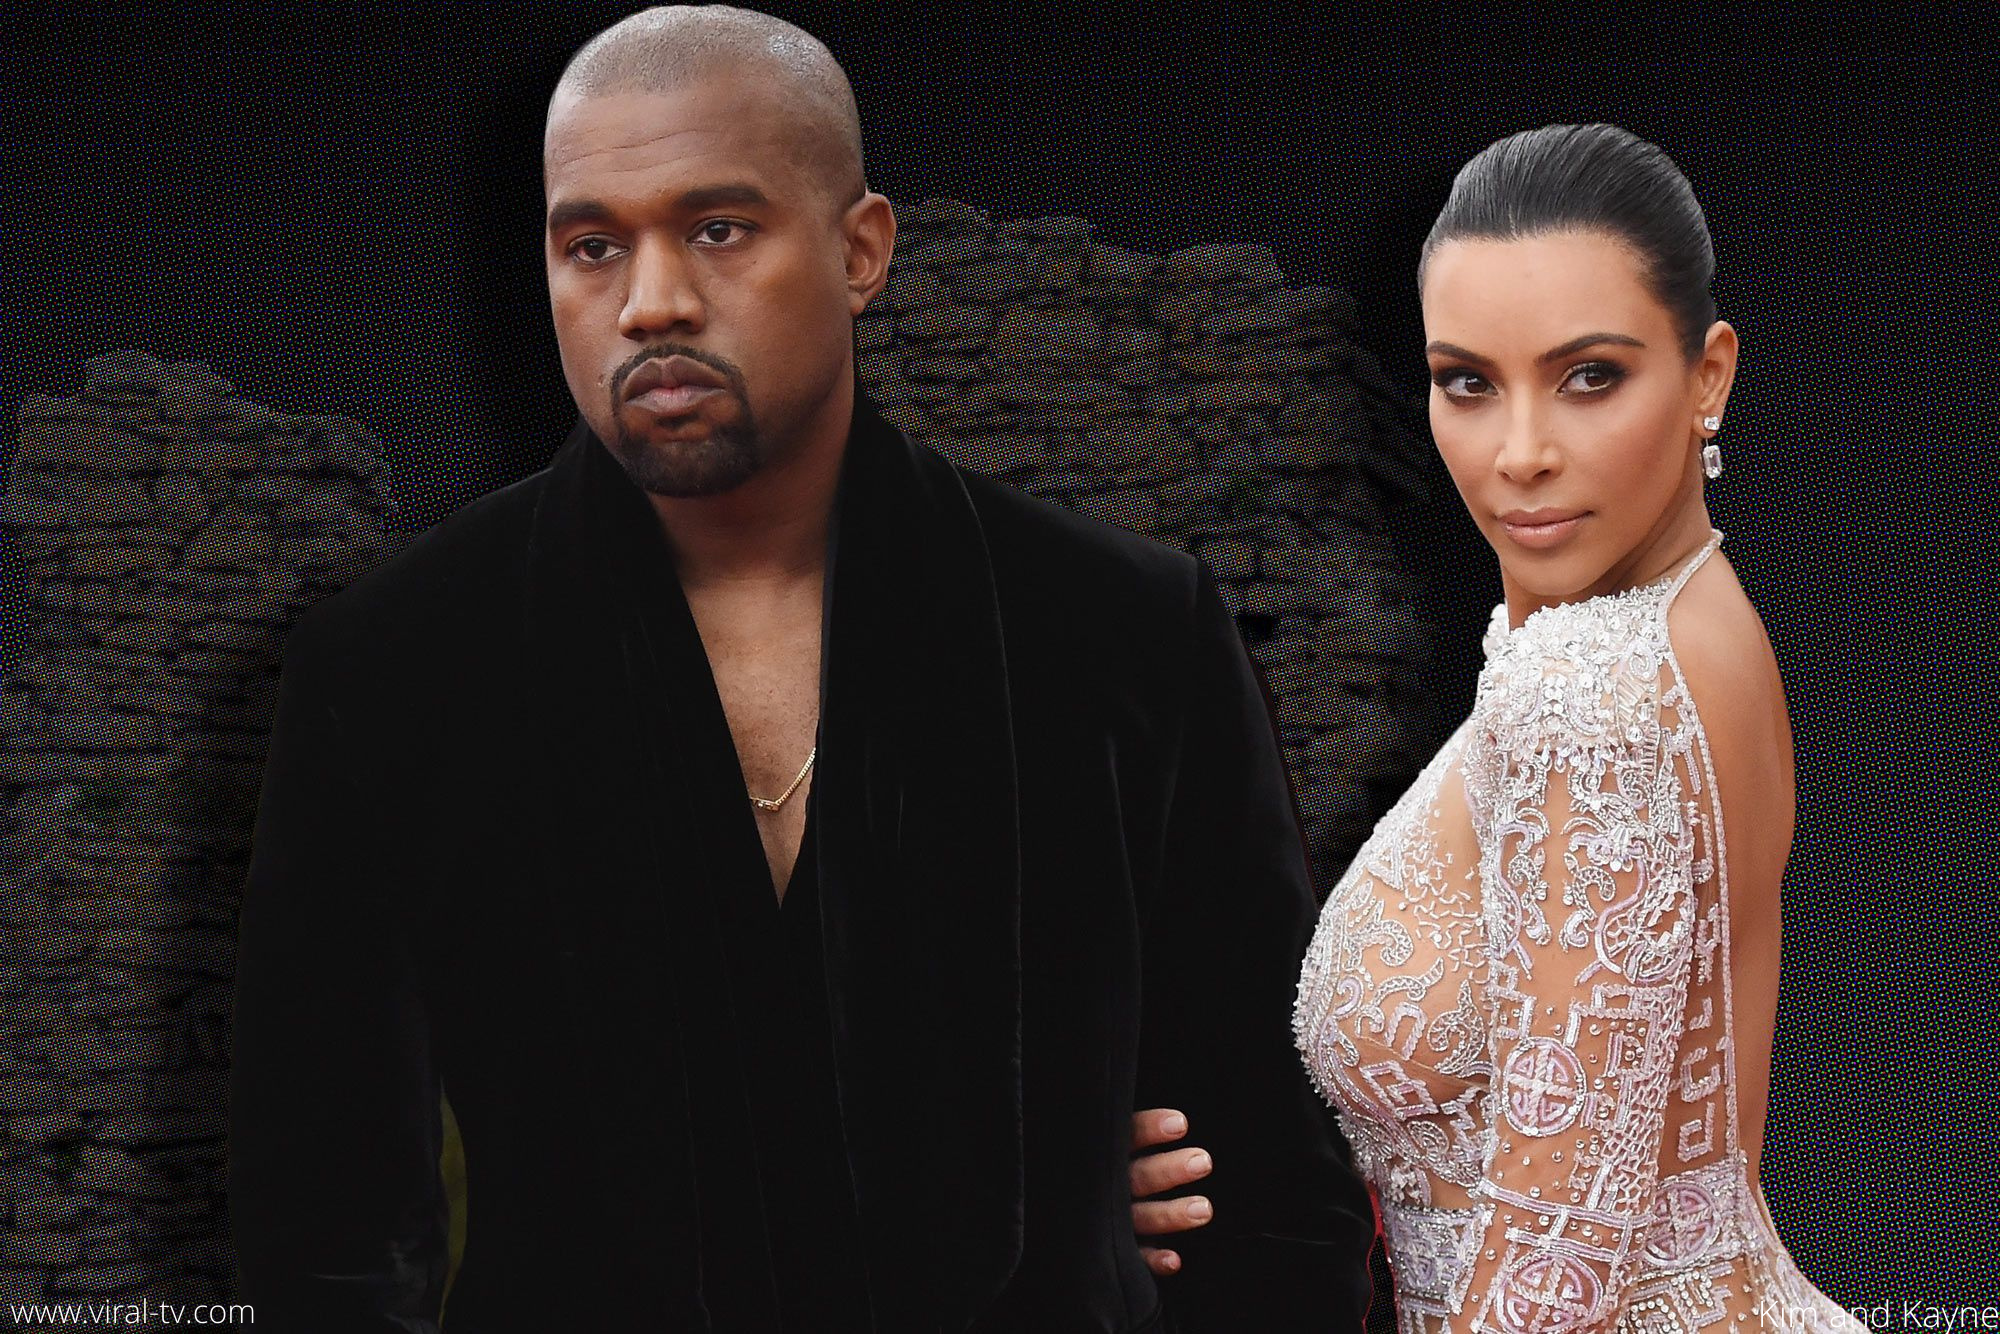 DIVORCE ON THE TABLE; KIM AND KANYE In Marriage Counseling